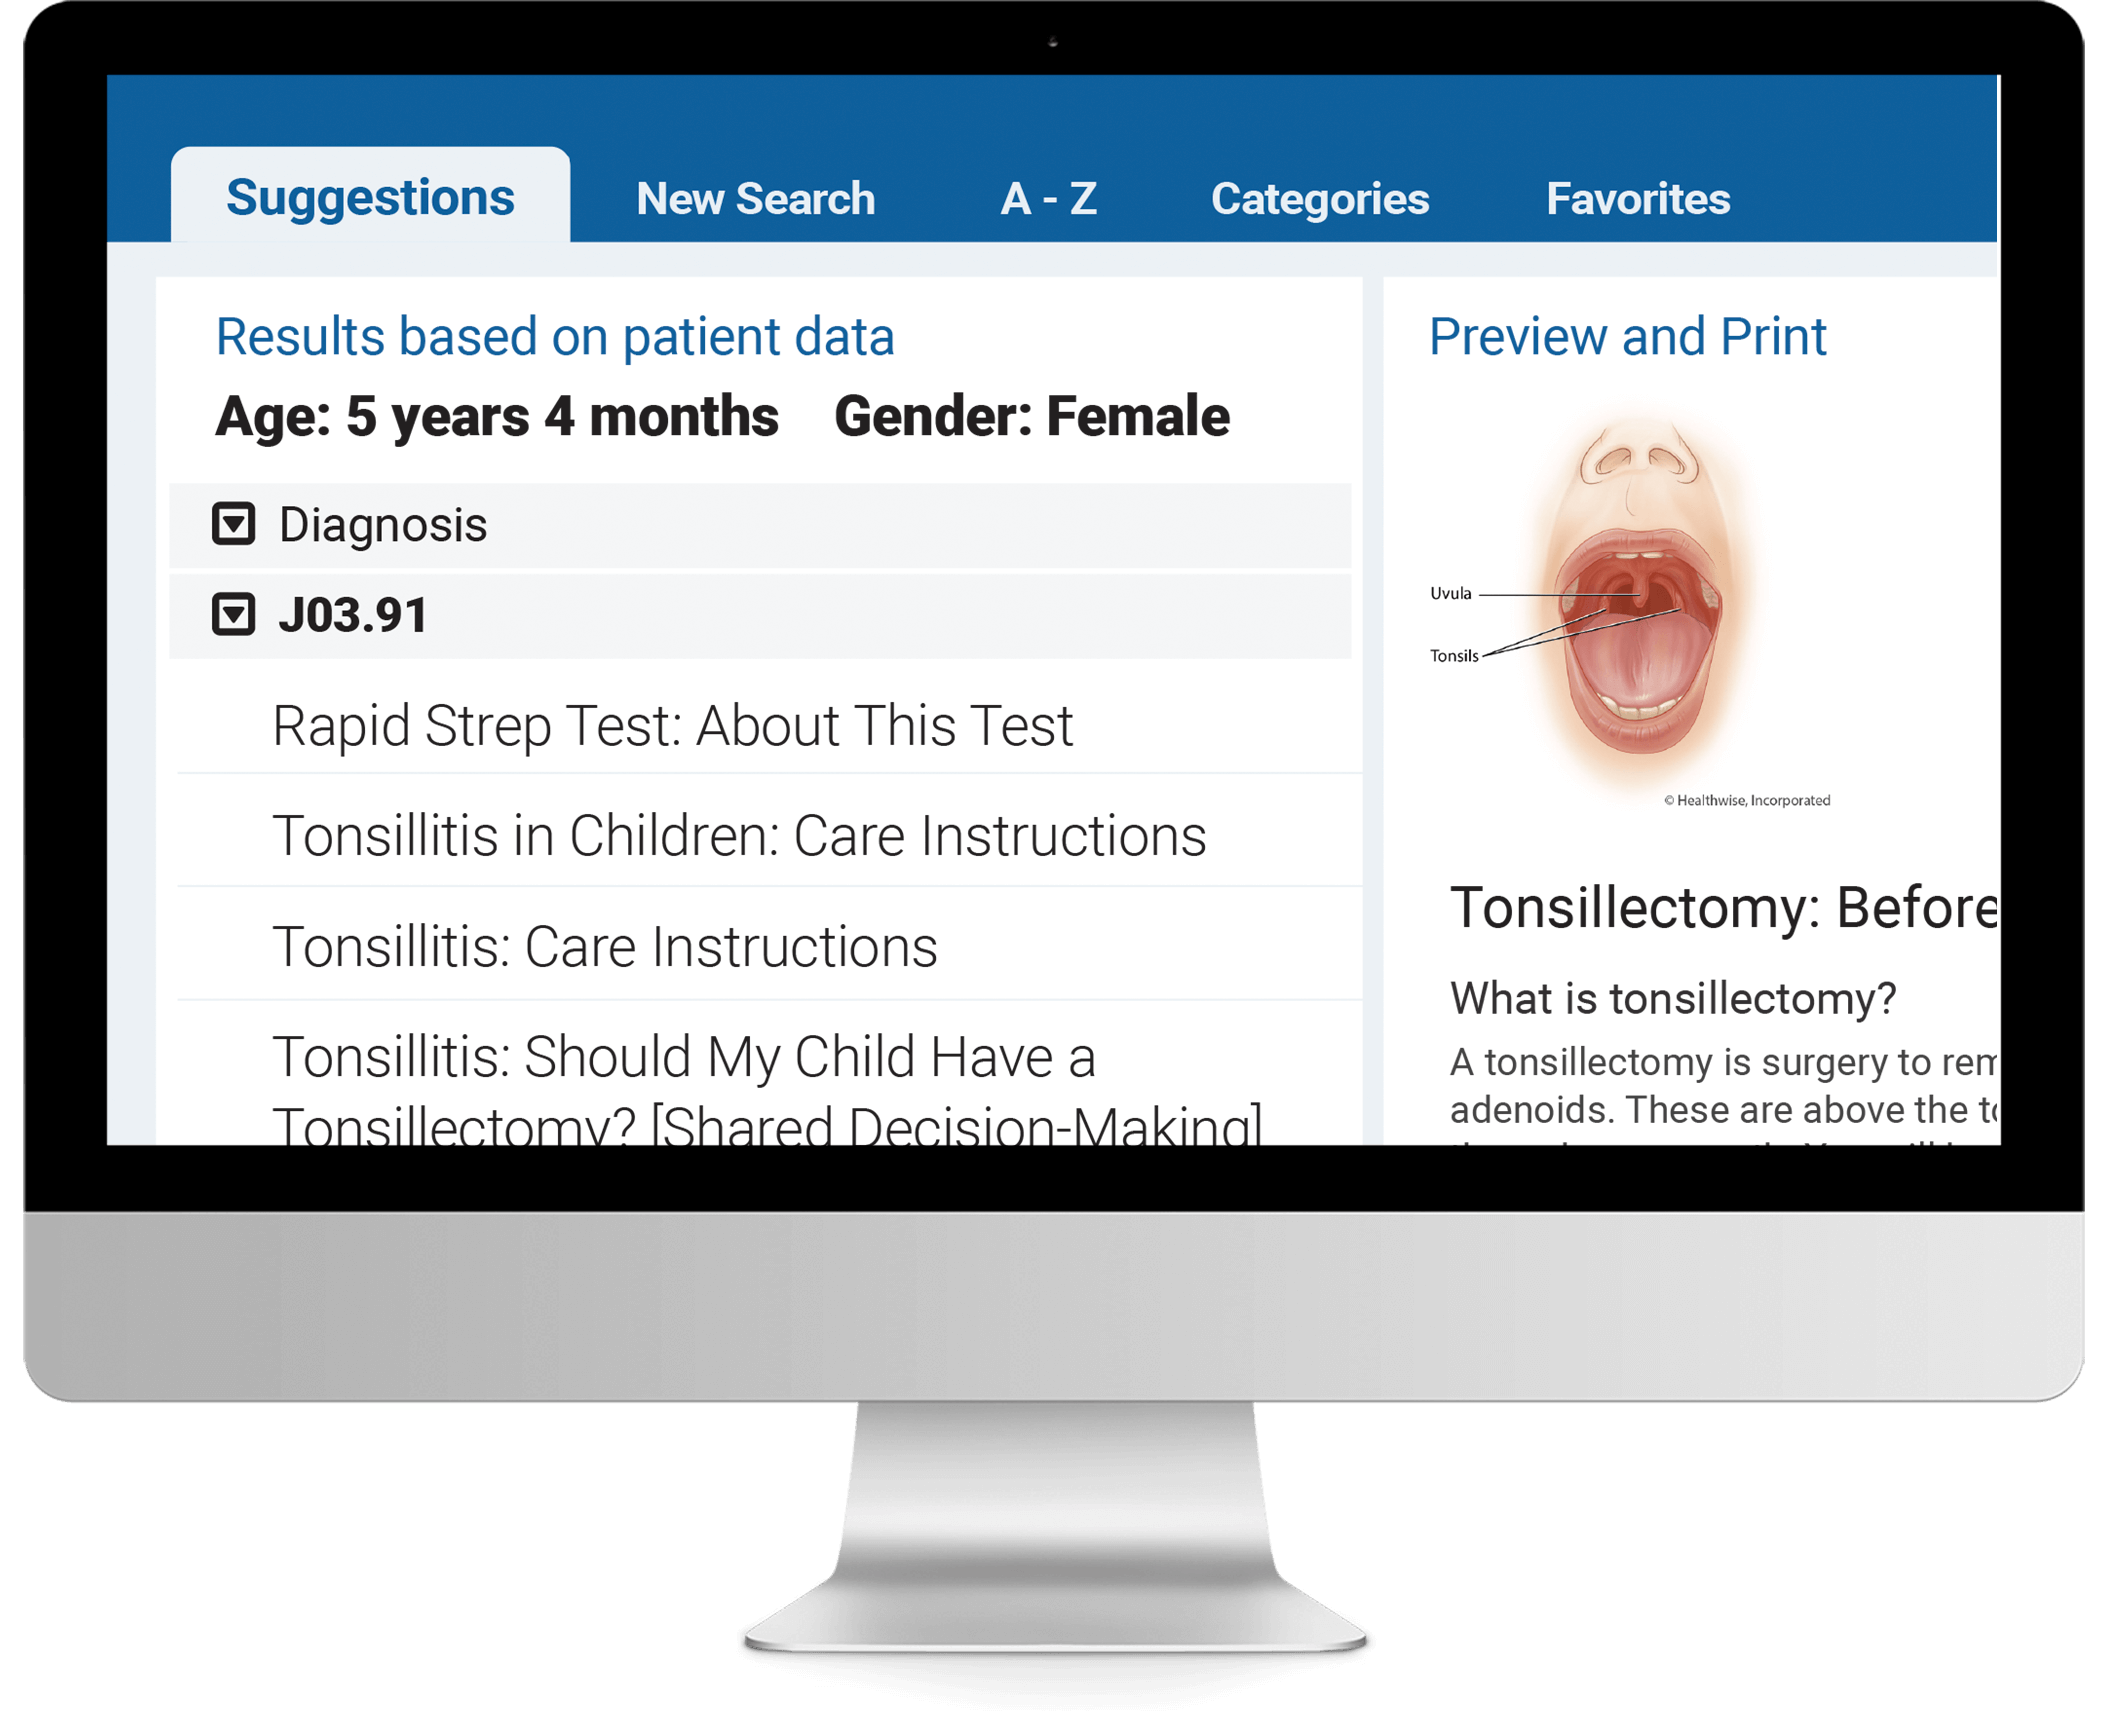 Patient Instructions search on tablet